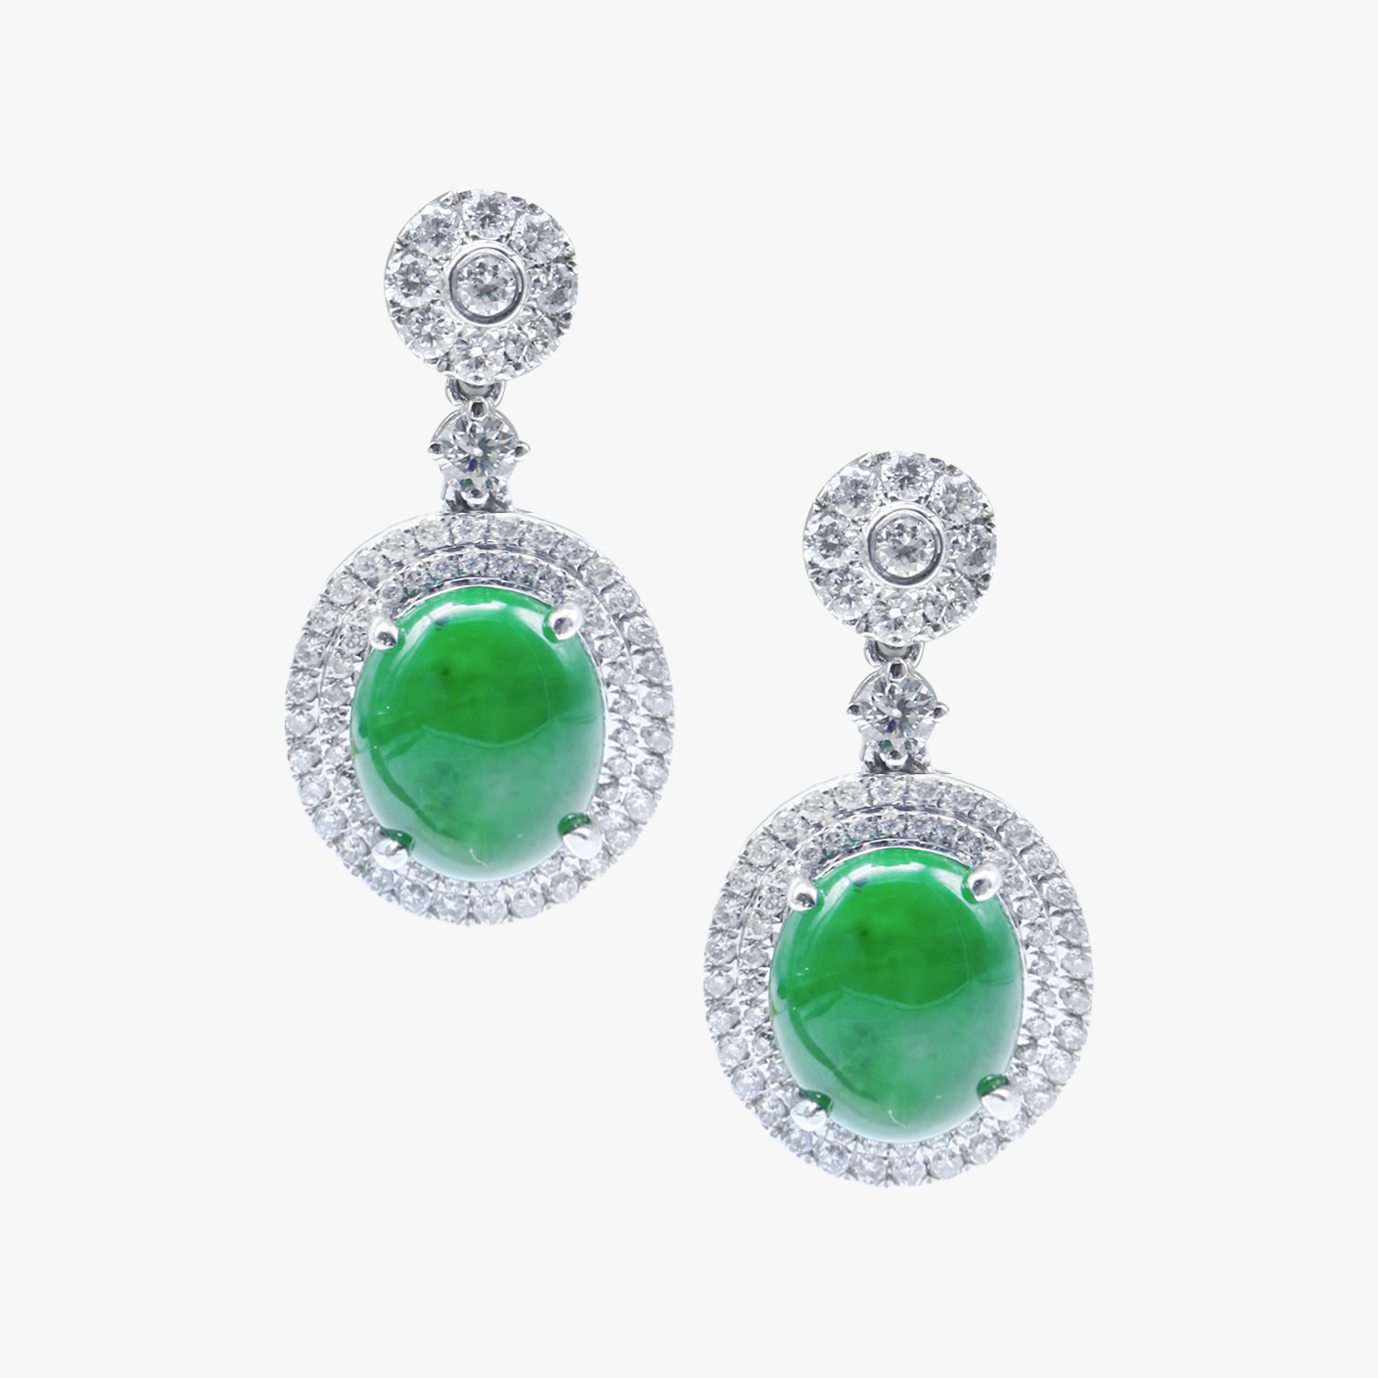 Red Carpet Event Imperial Green Double Halo Jadeite Jade Earrings